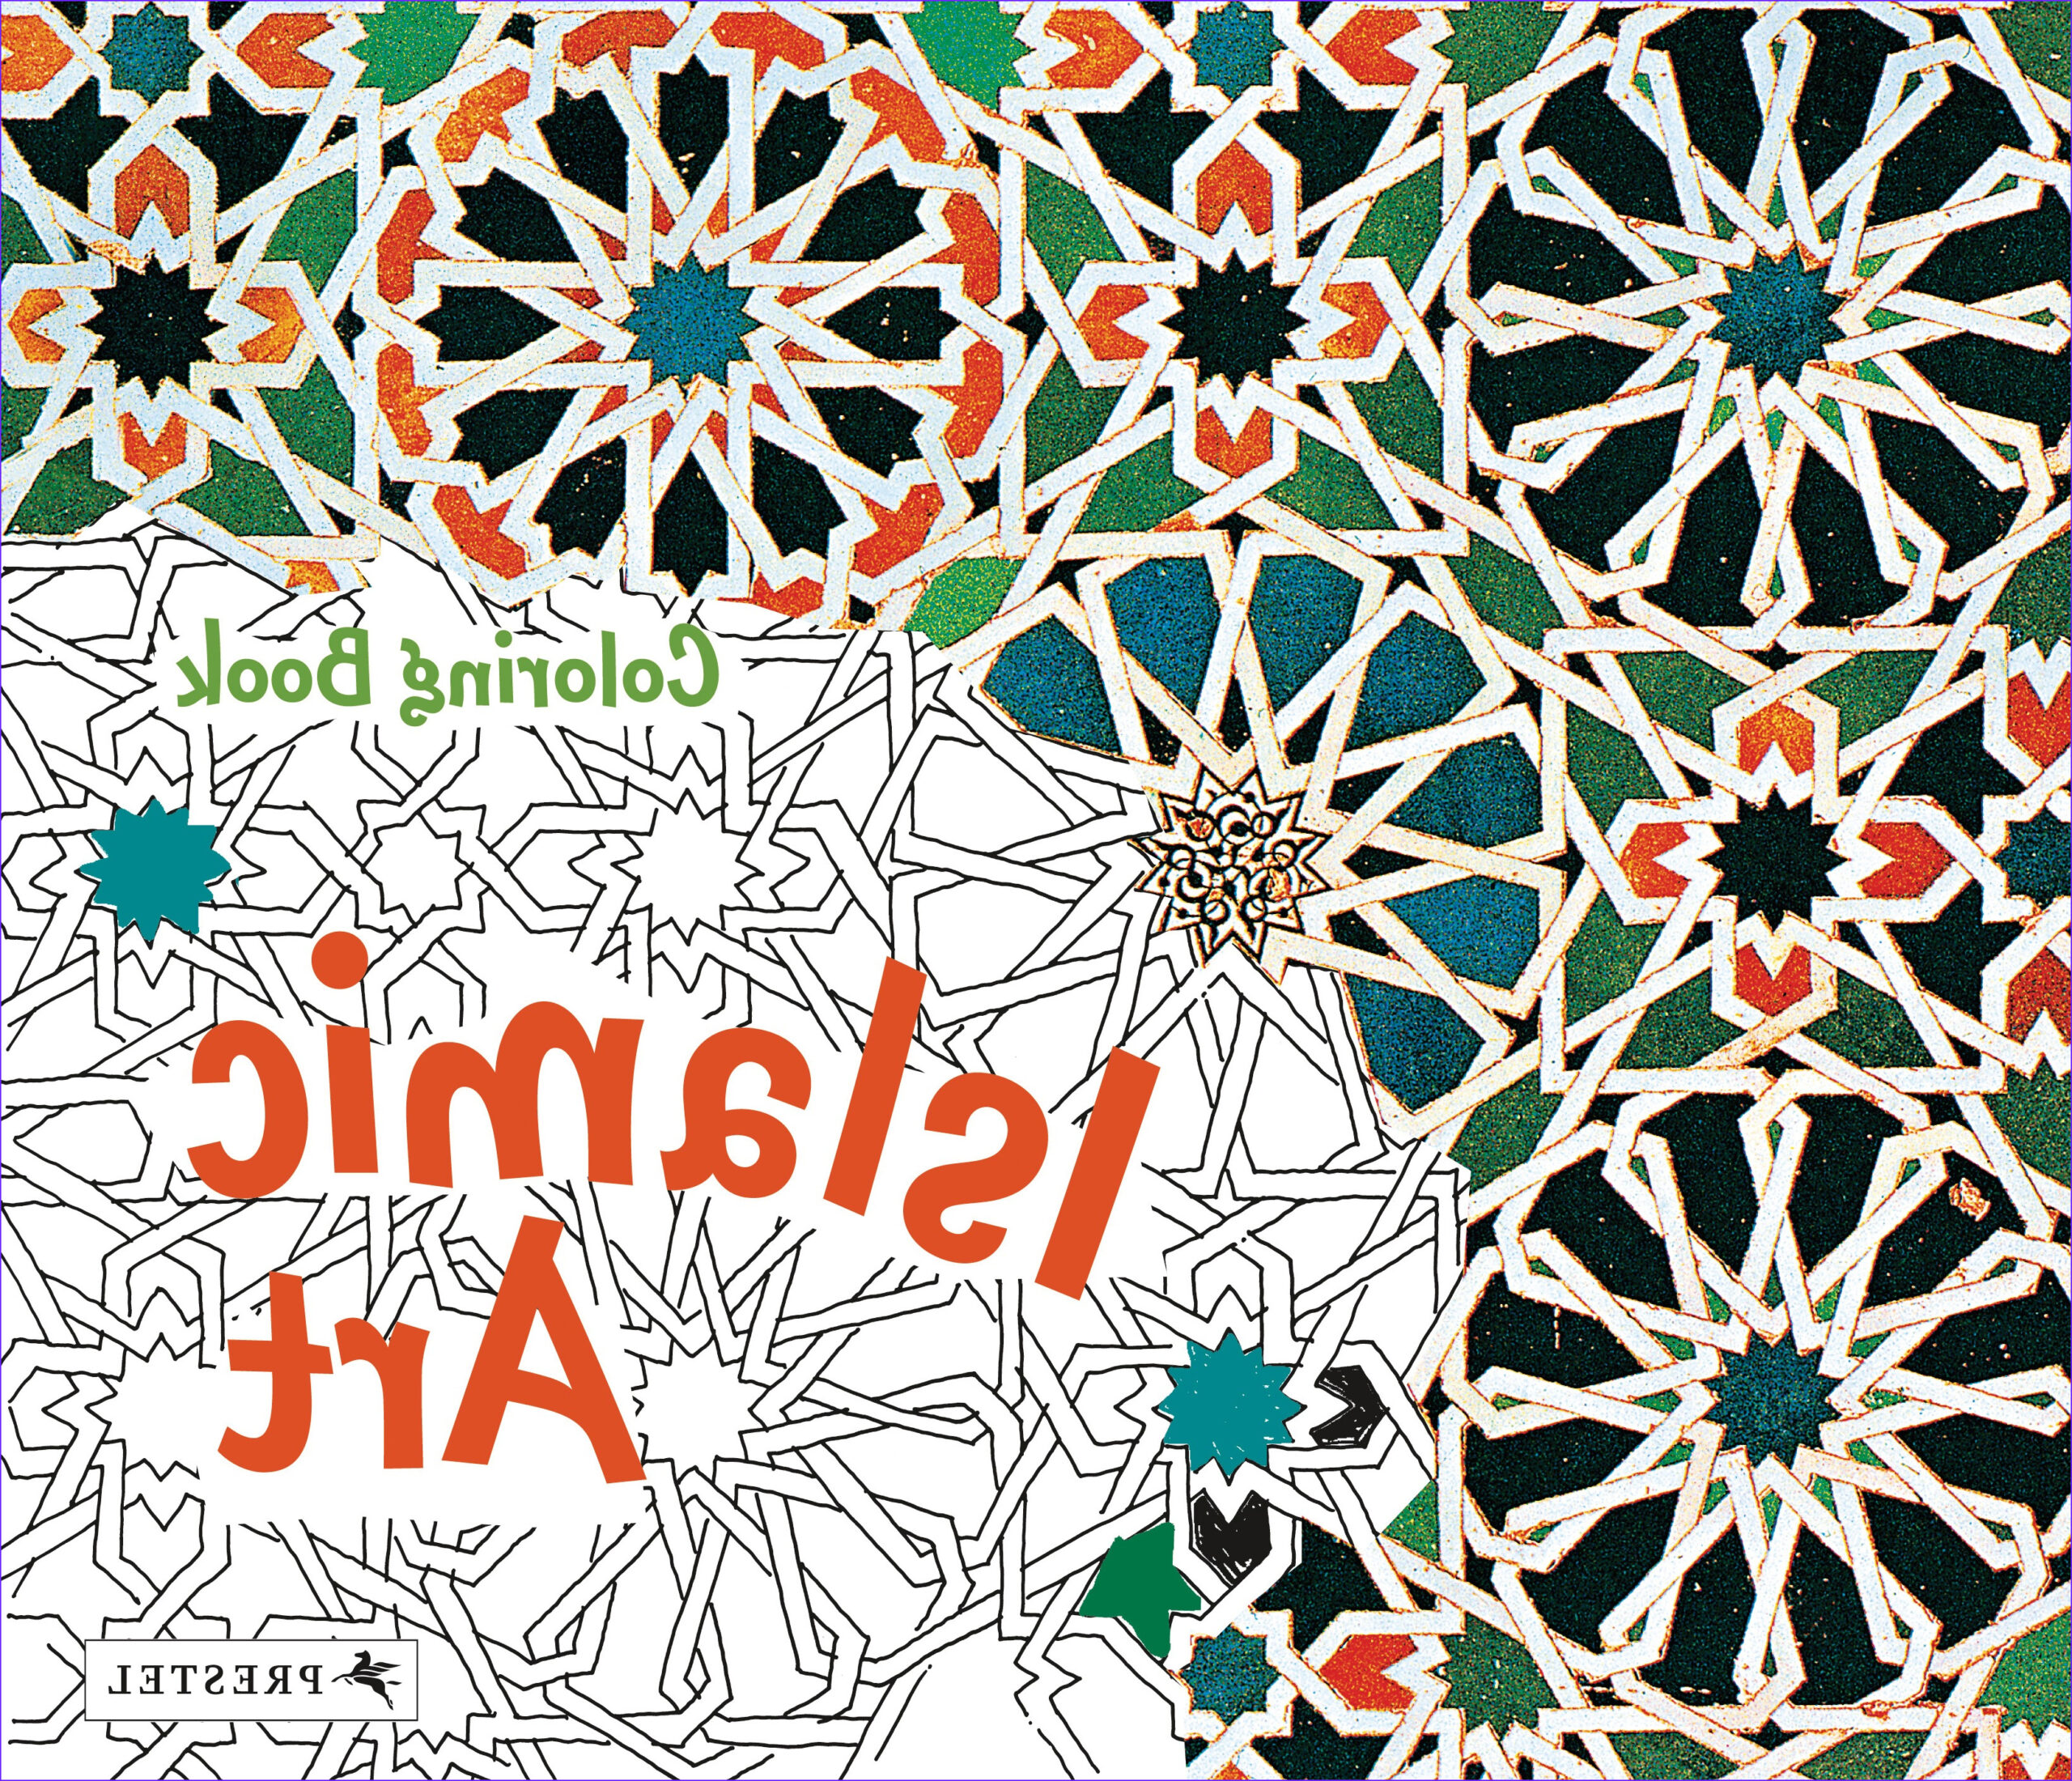 Painting Coloring Books Best Of Photos Annette Roeder Coloring Book islamic Art Prestel